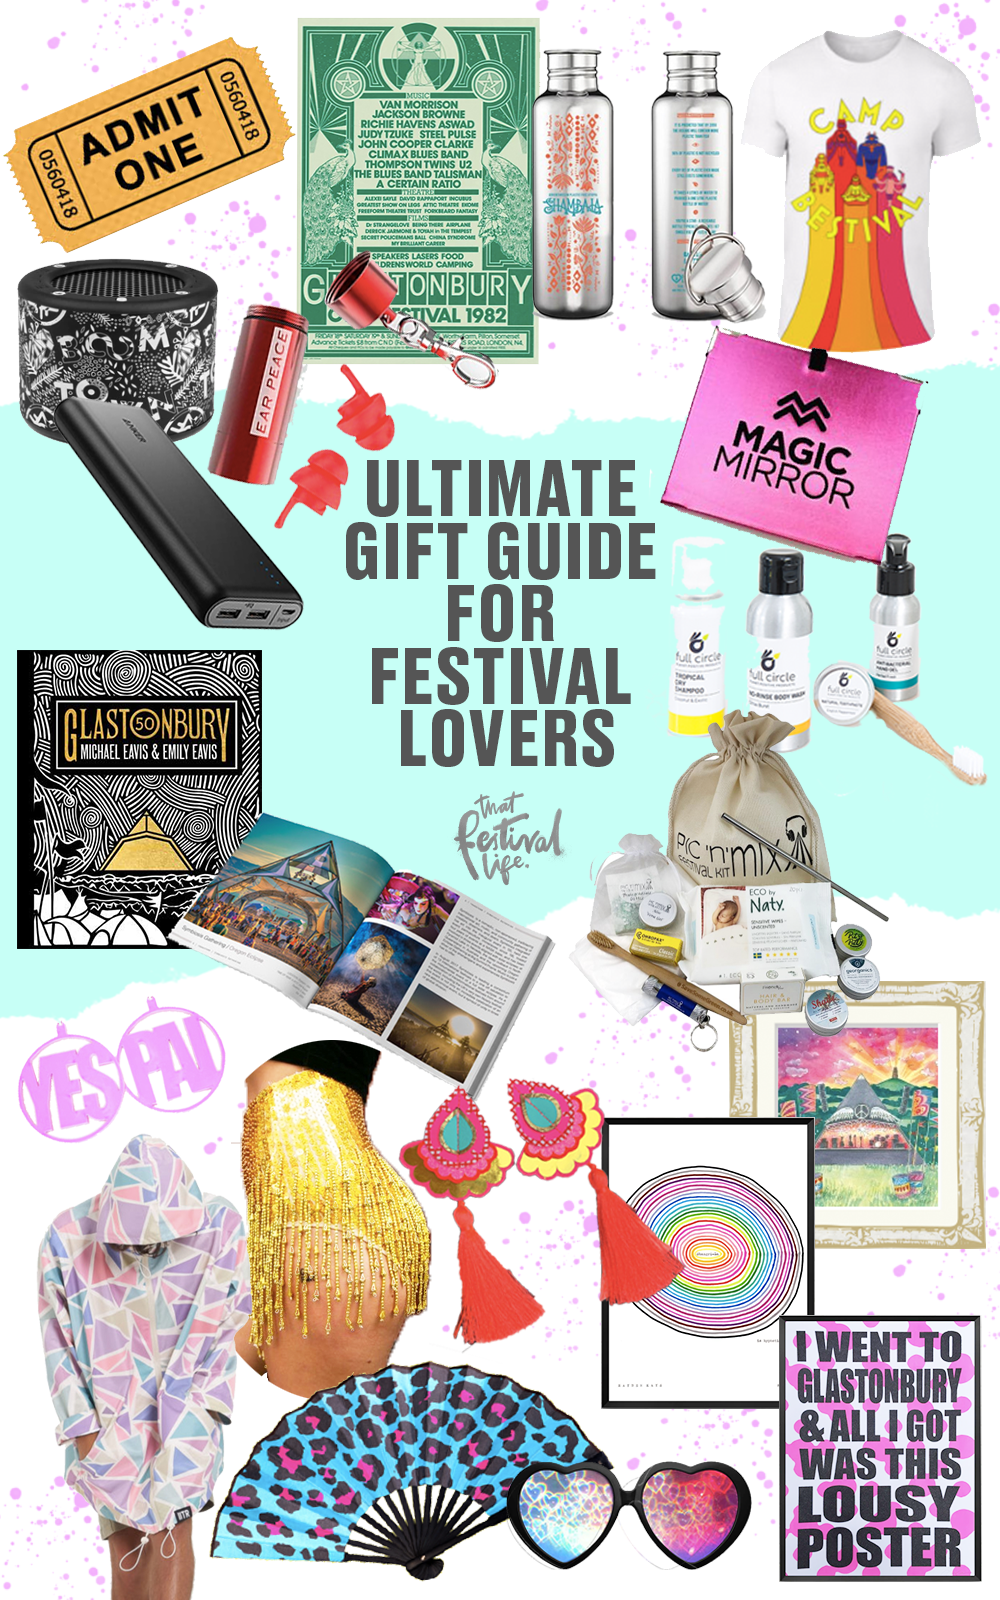 21 Epic Gift Ideas for Festival Lovers